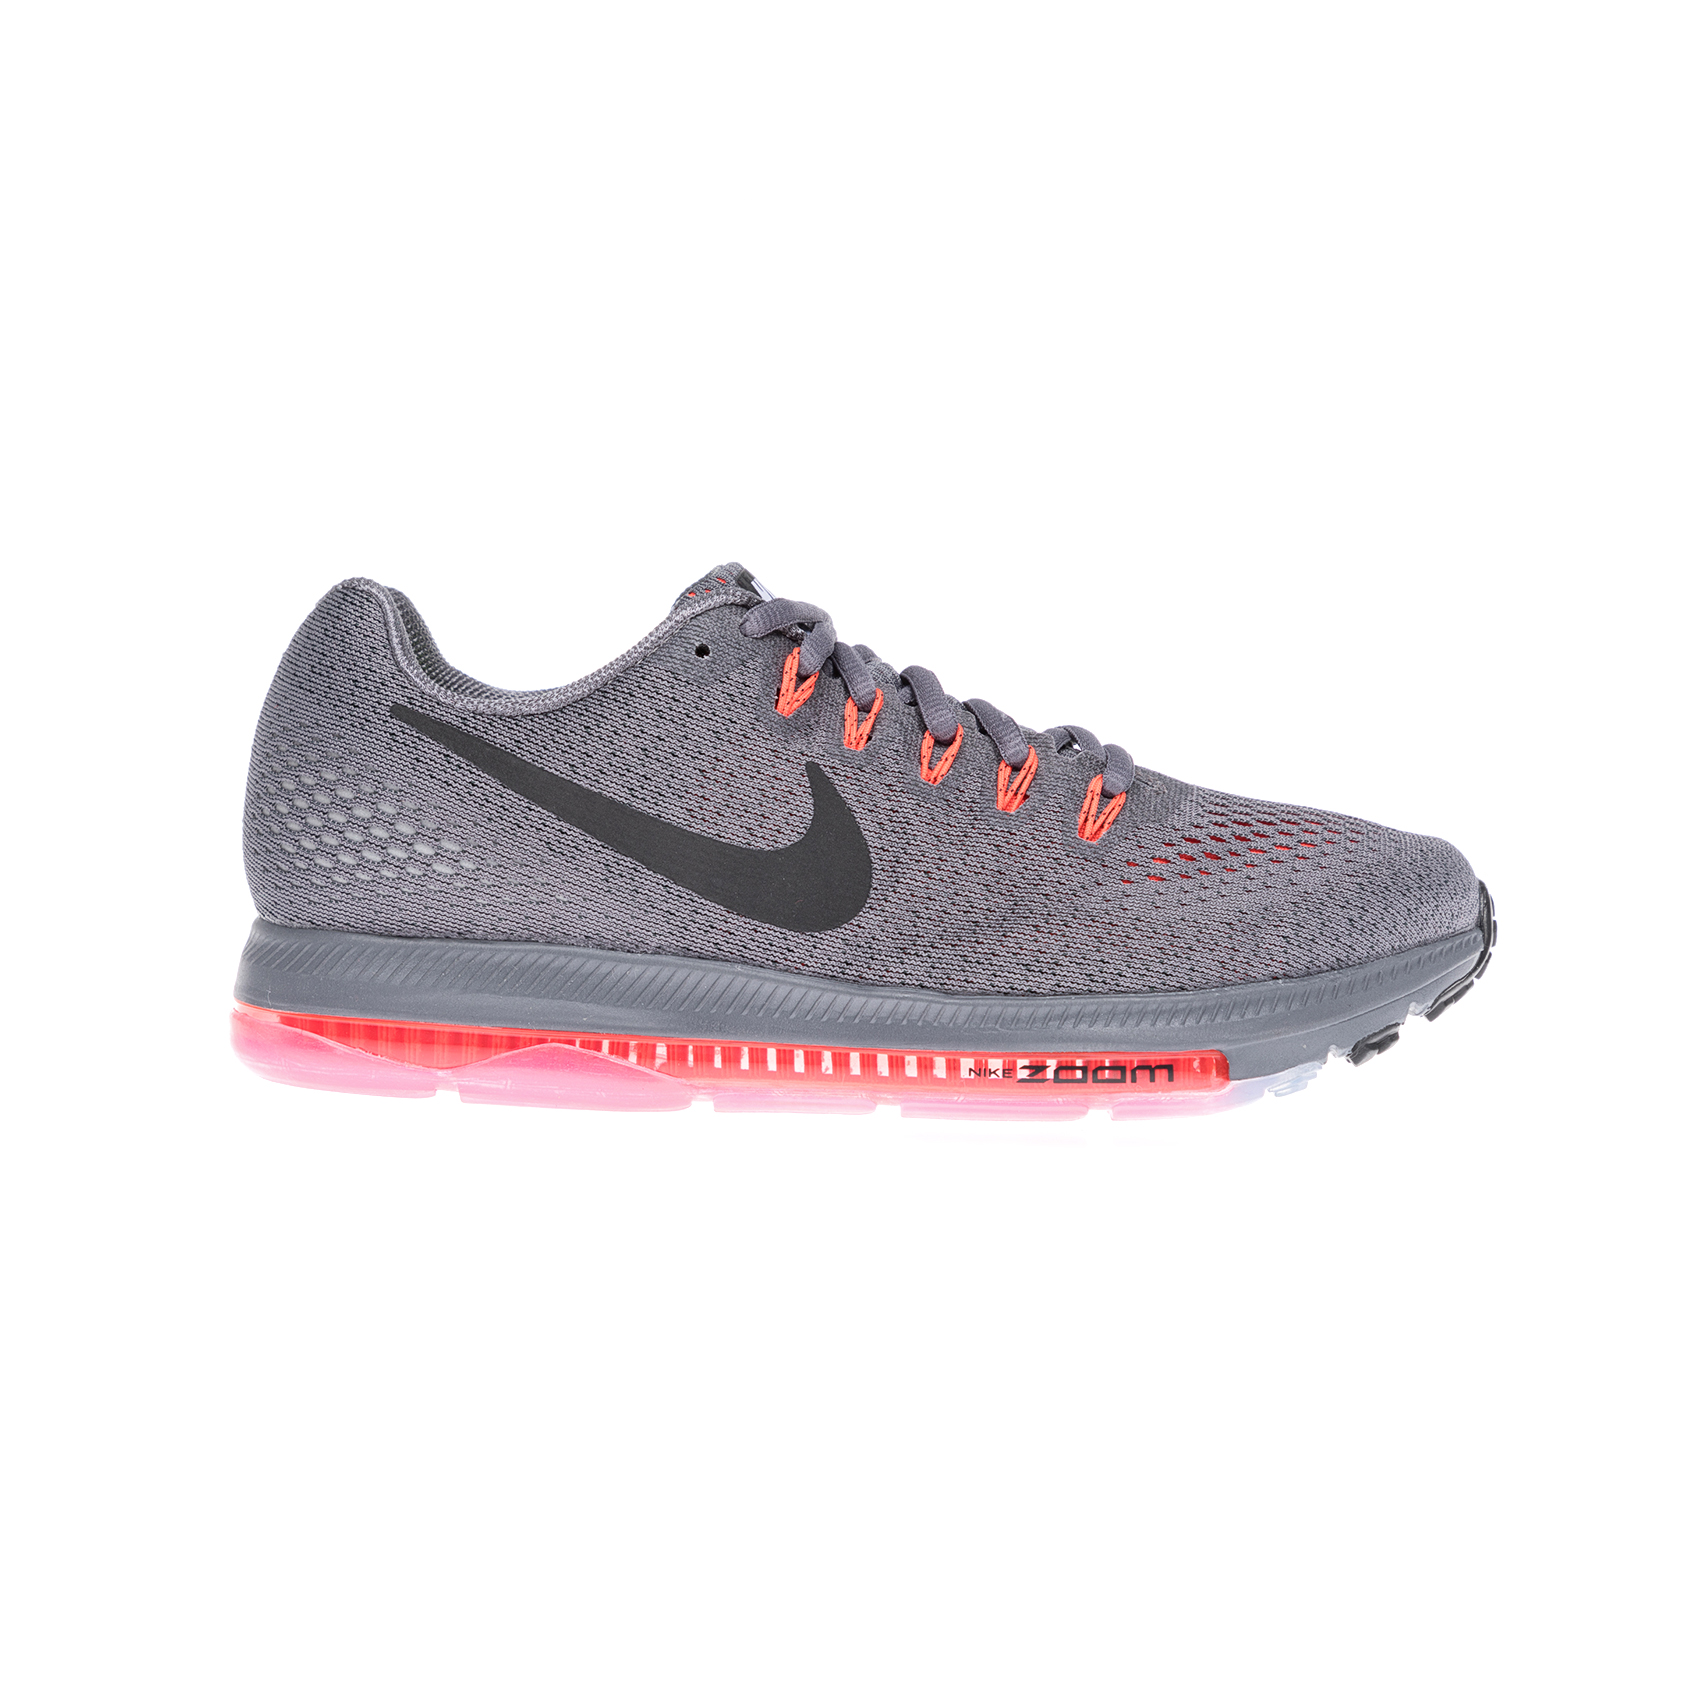 NIKE – Αντρικά παπούτσια NIKE ZOOM ALL OUT LOW γκρι